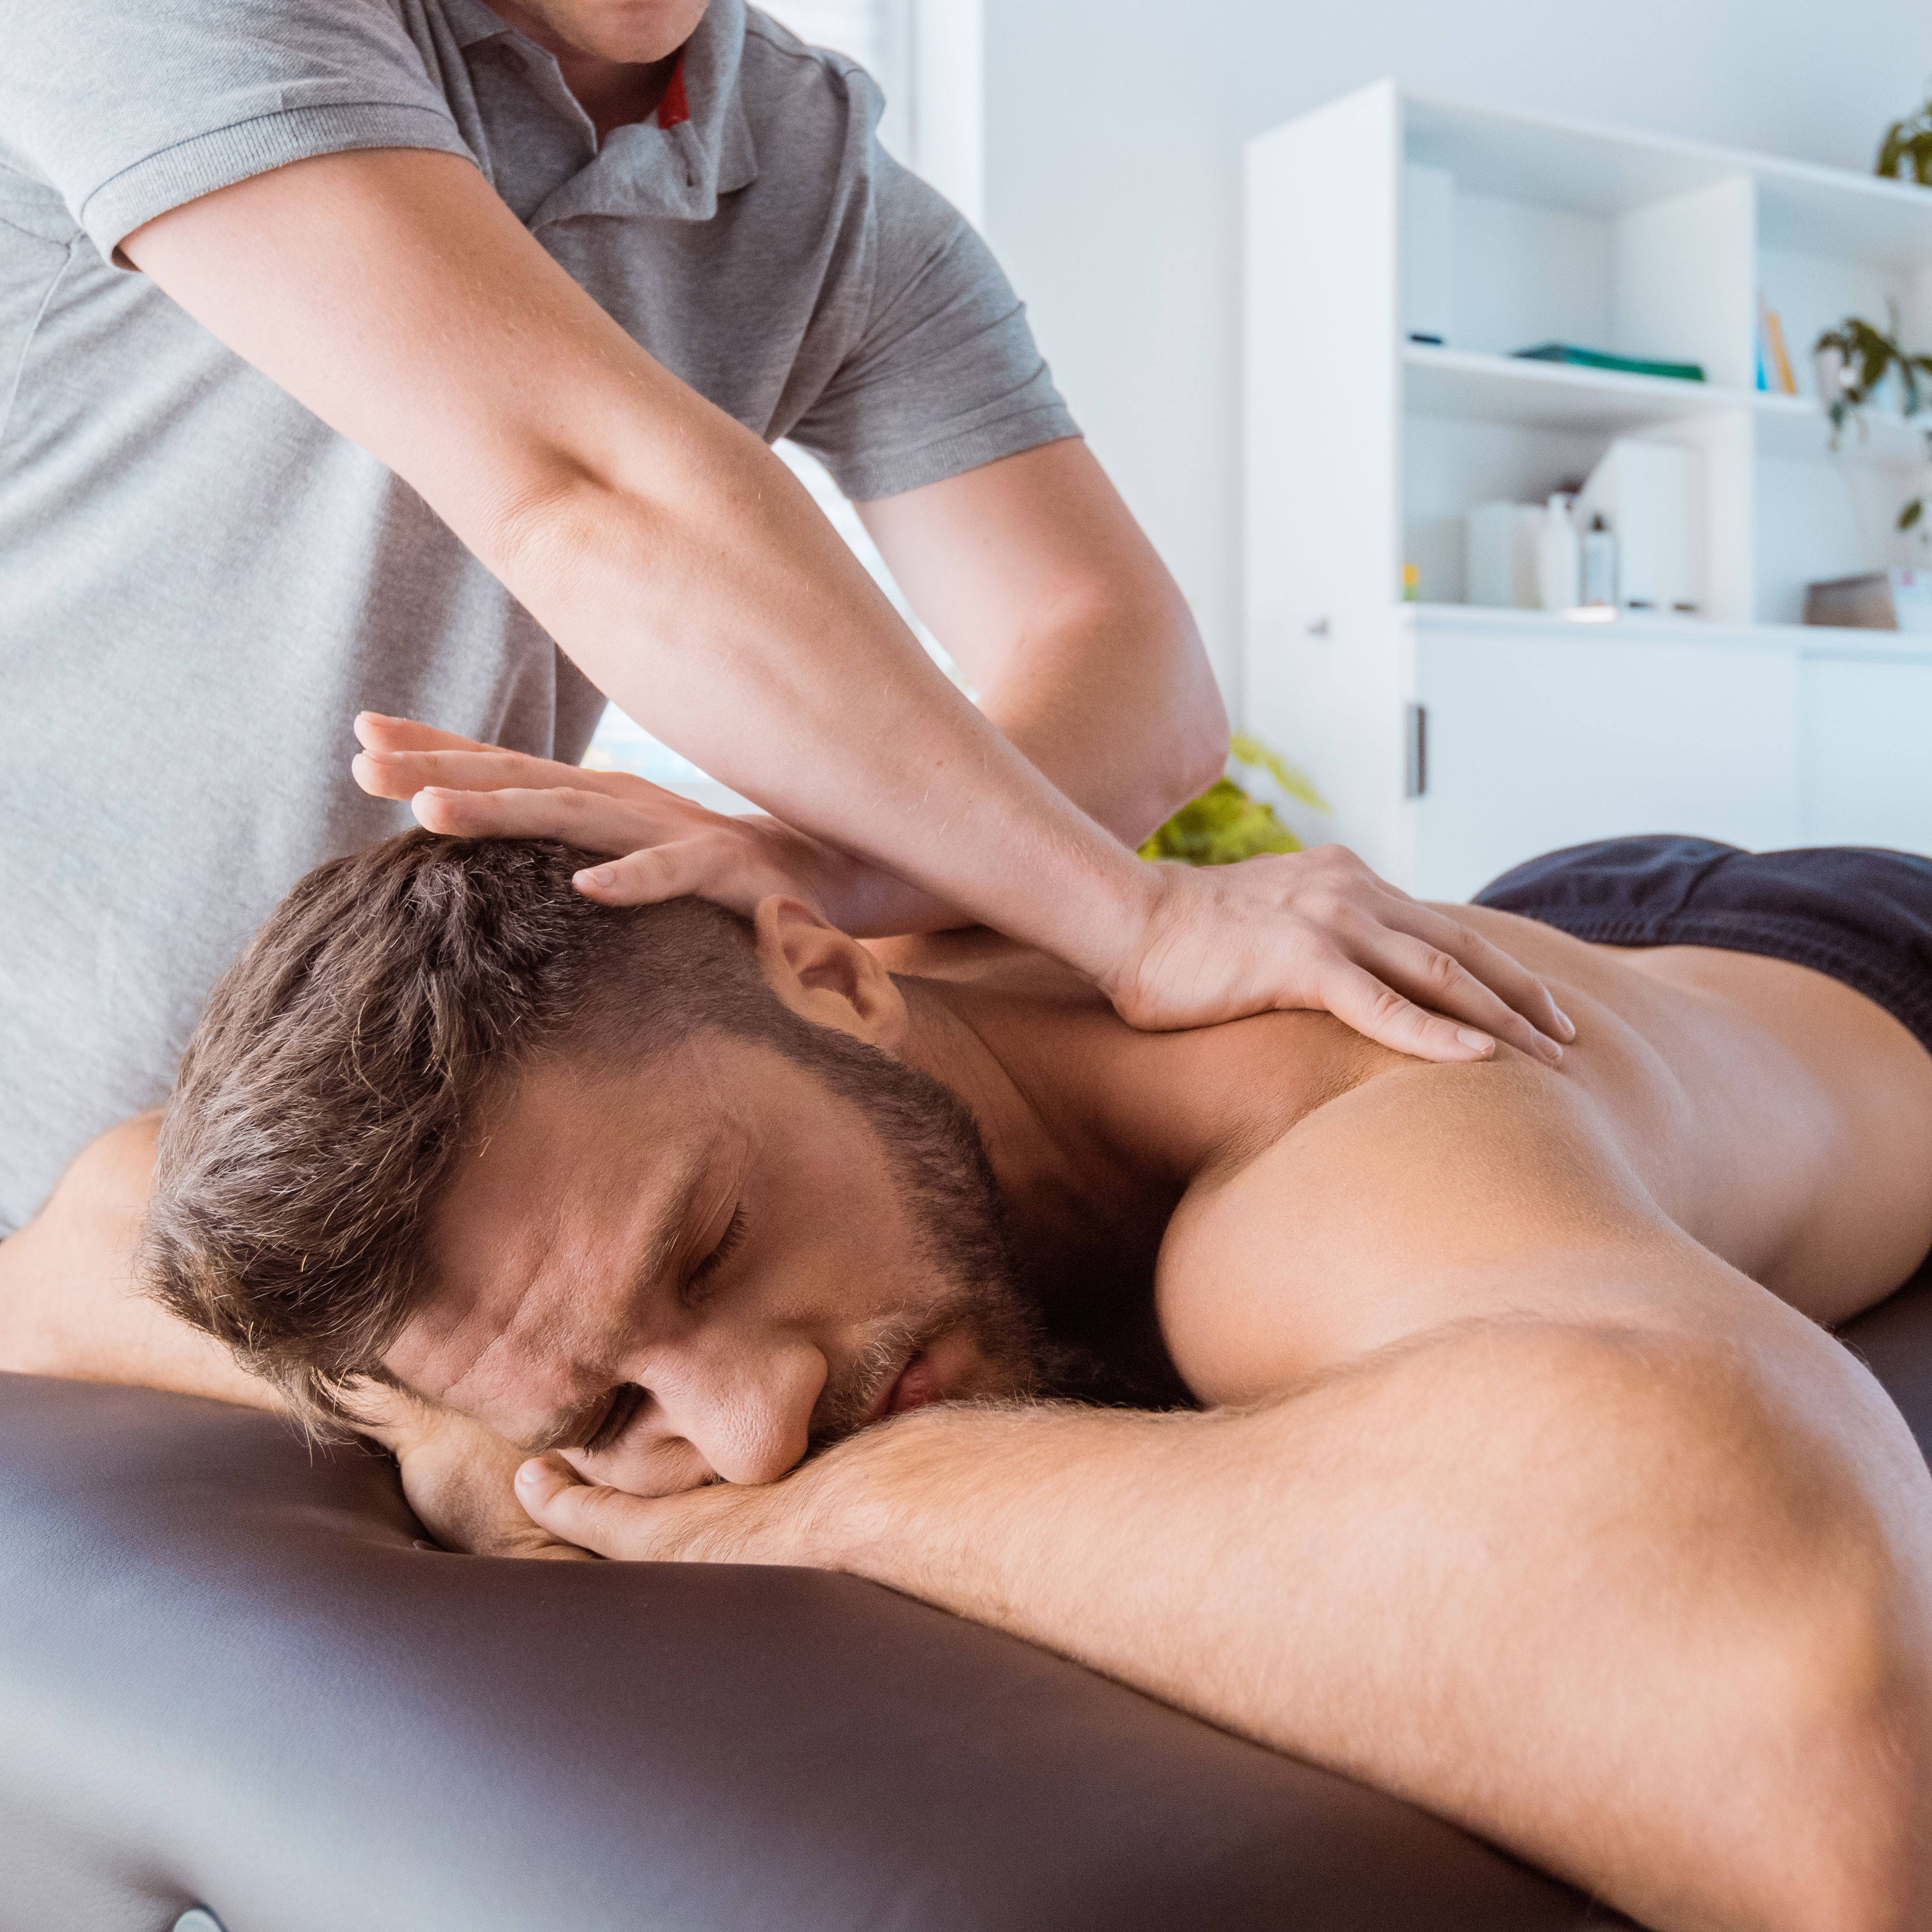 Massage therapist massaging back of the young man